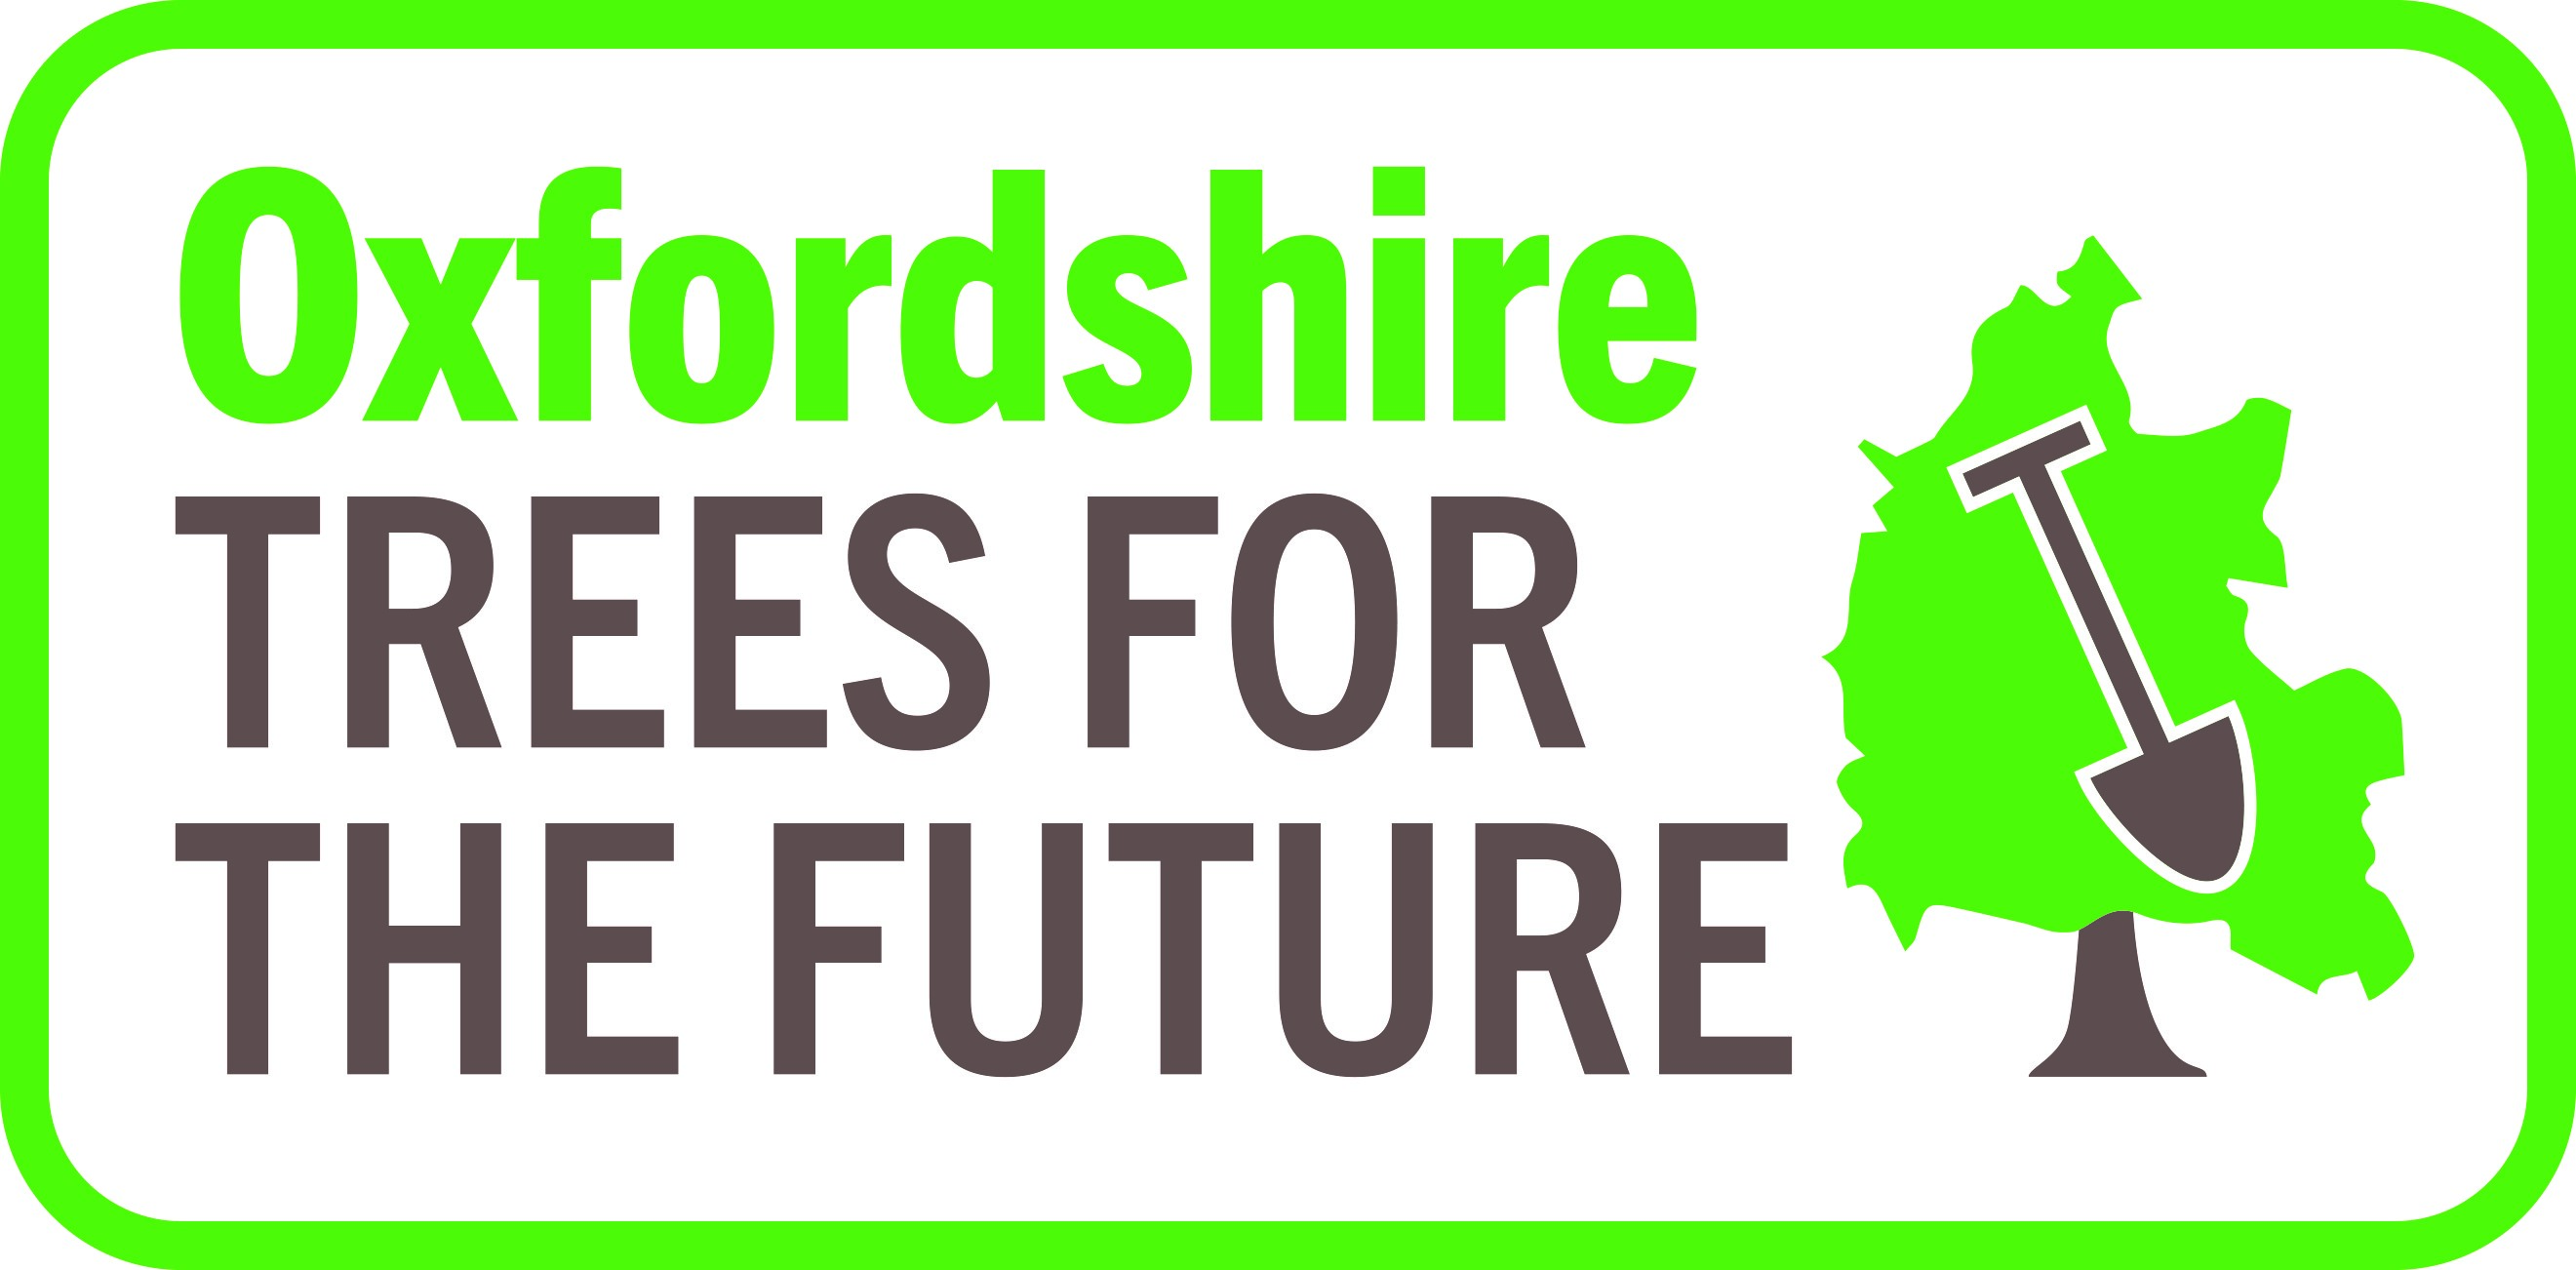 Oxfordshire Trees for the Future